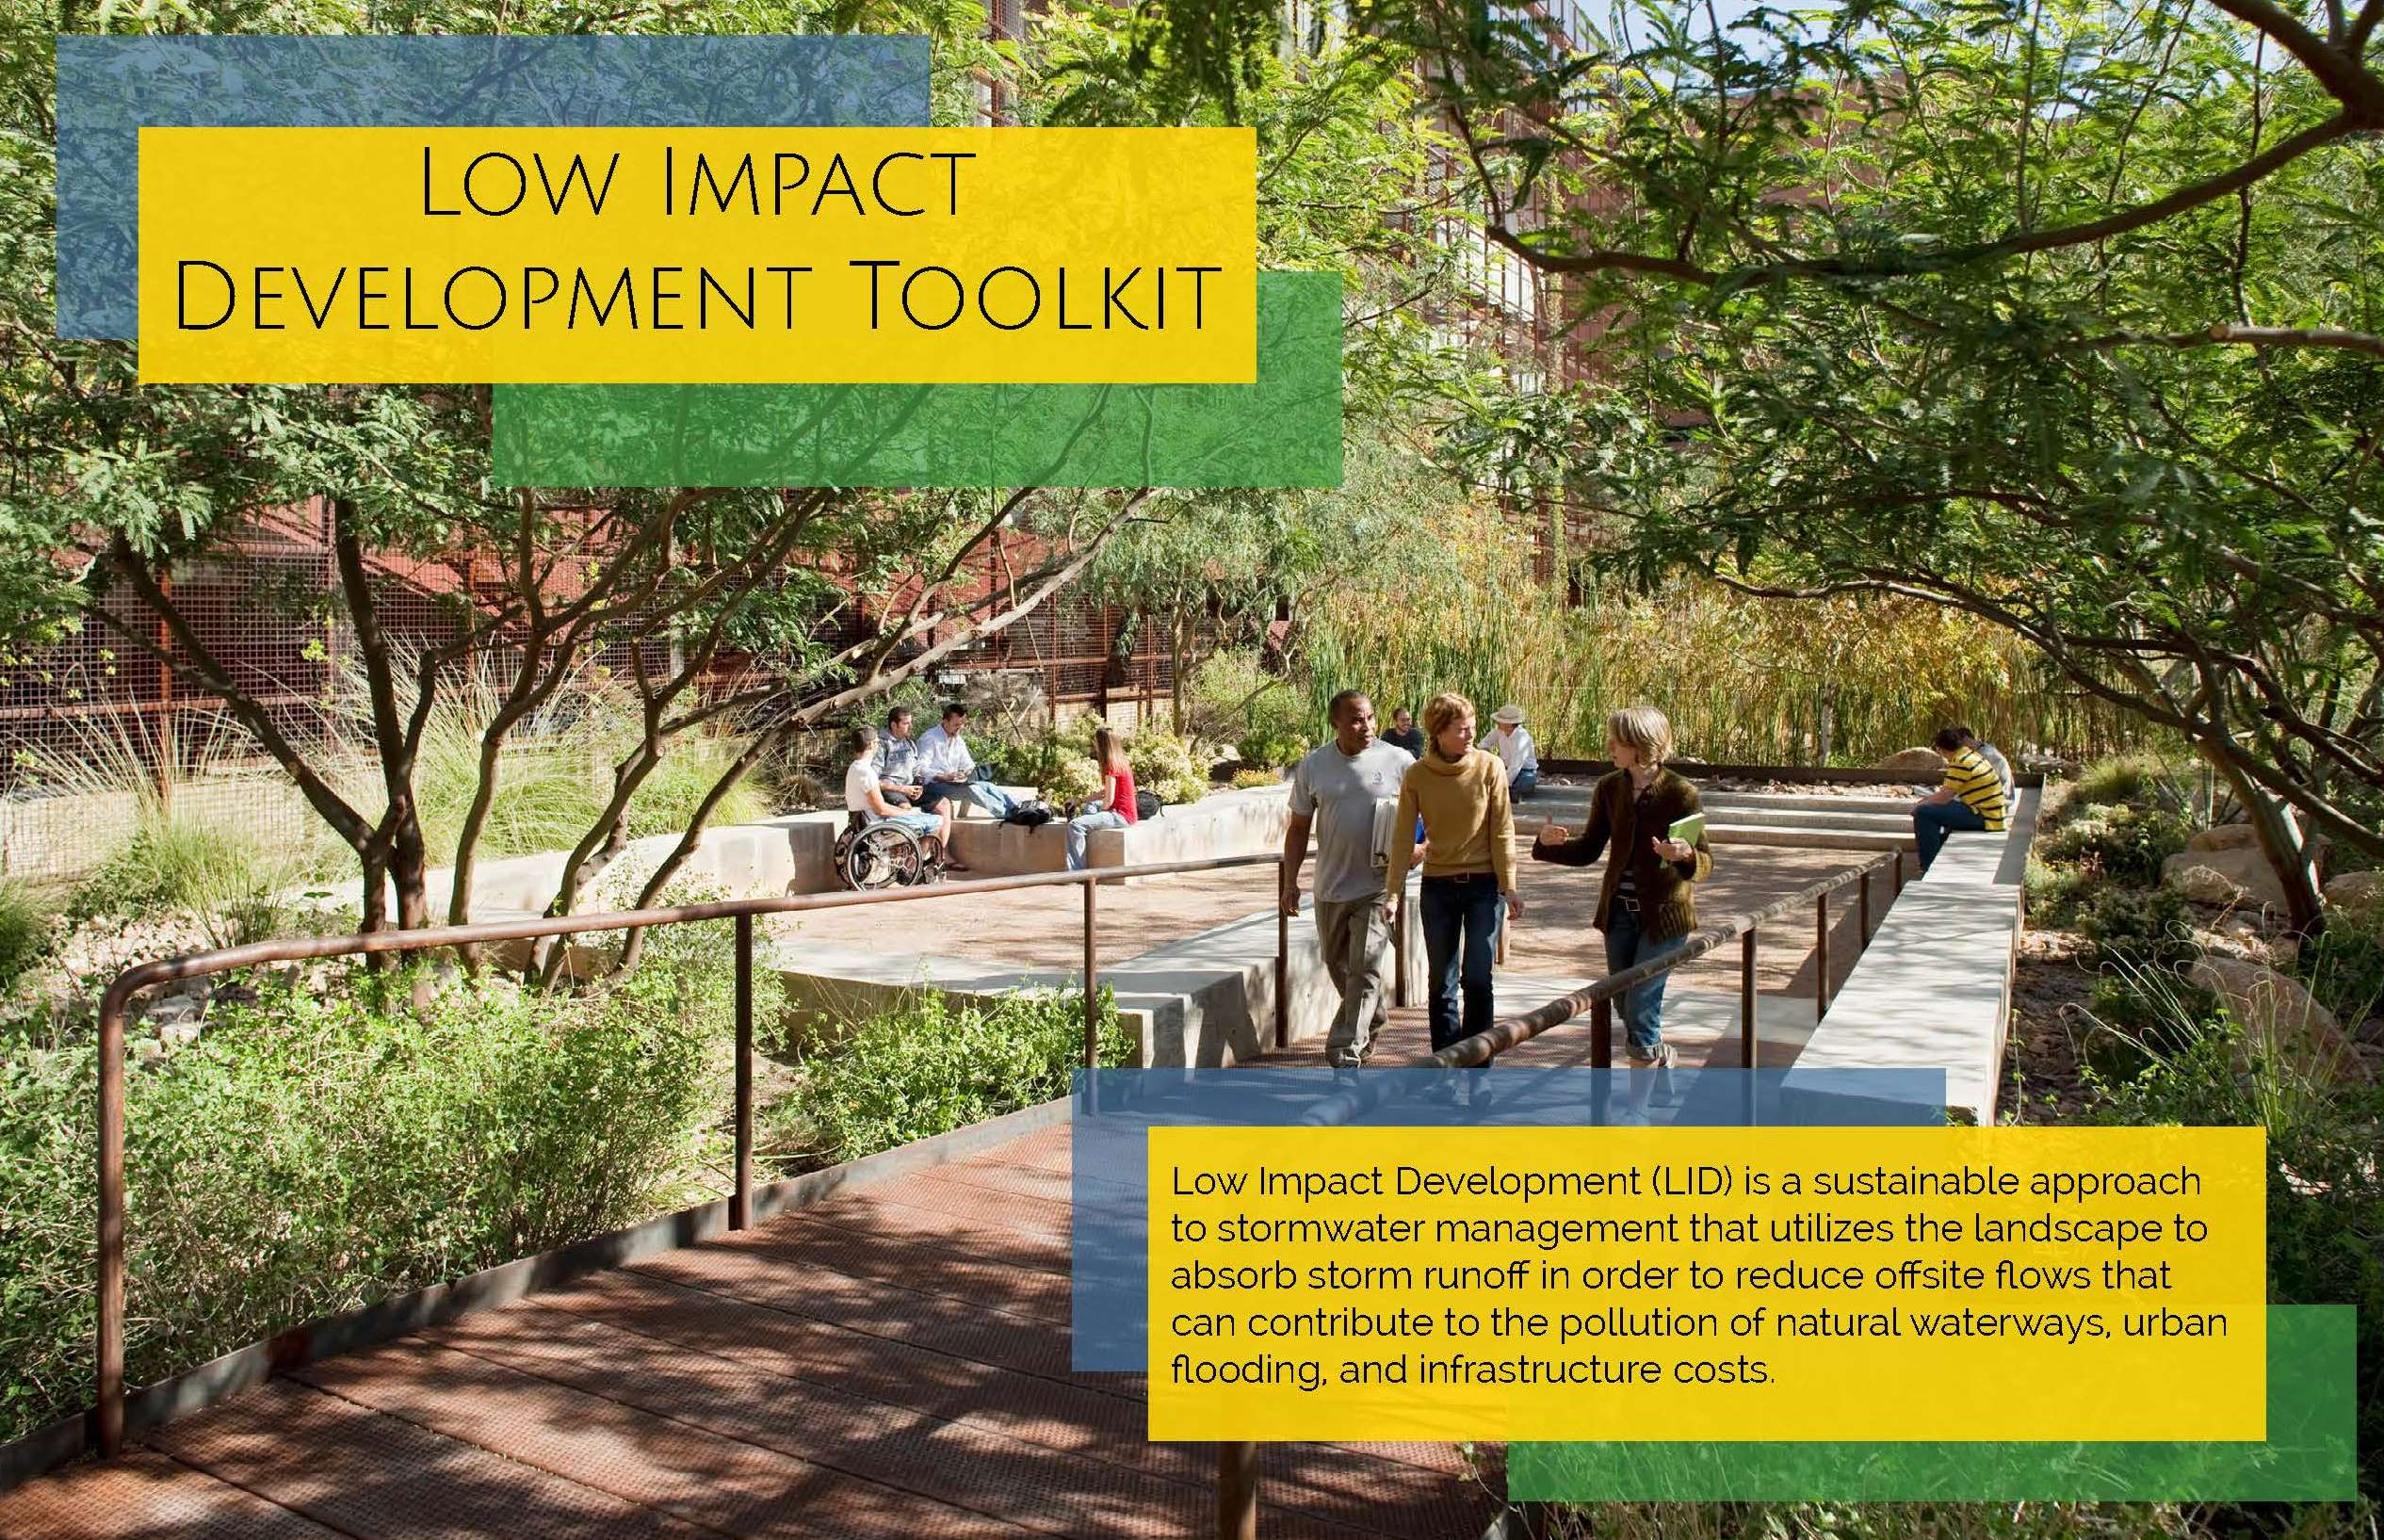 Low Impact Development Stormwater : Sustainablecities author at sustainable cities network